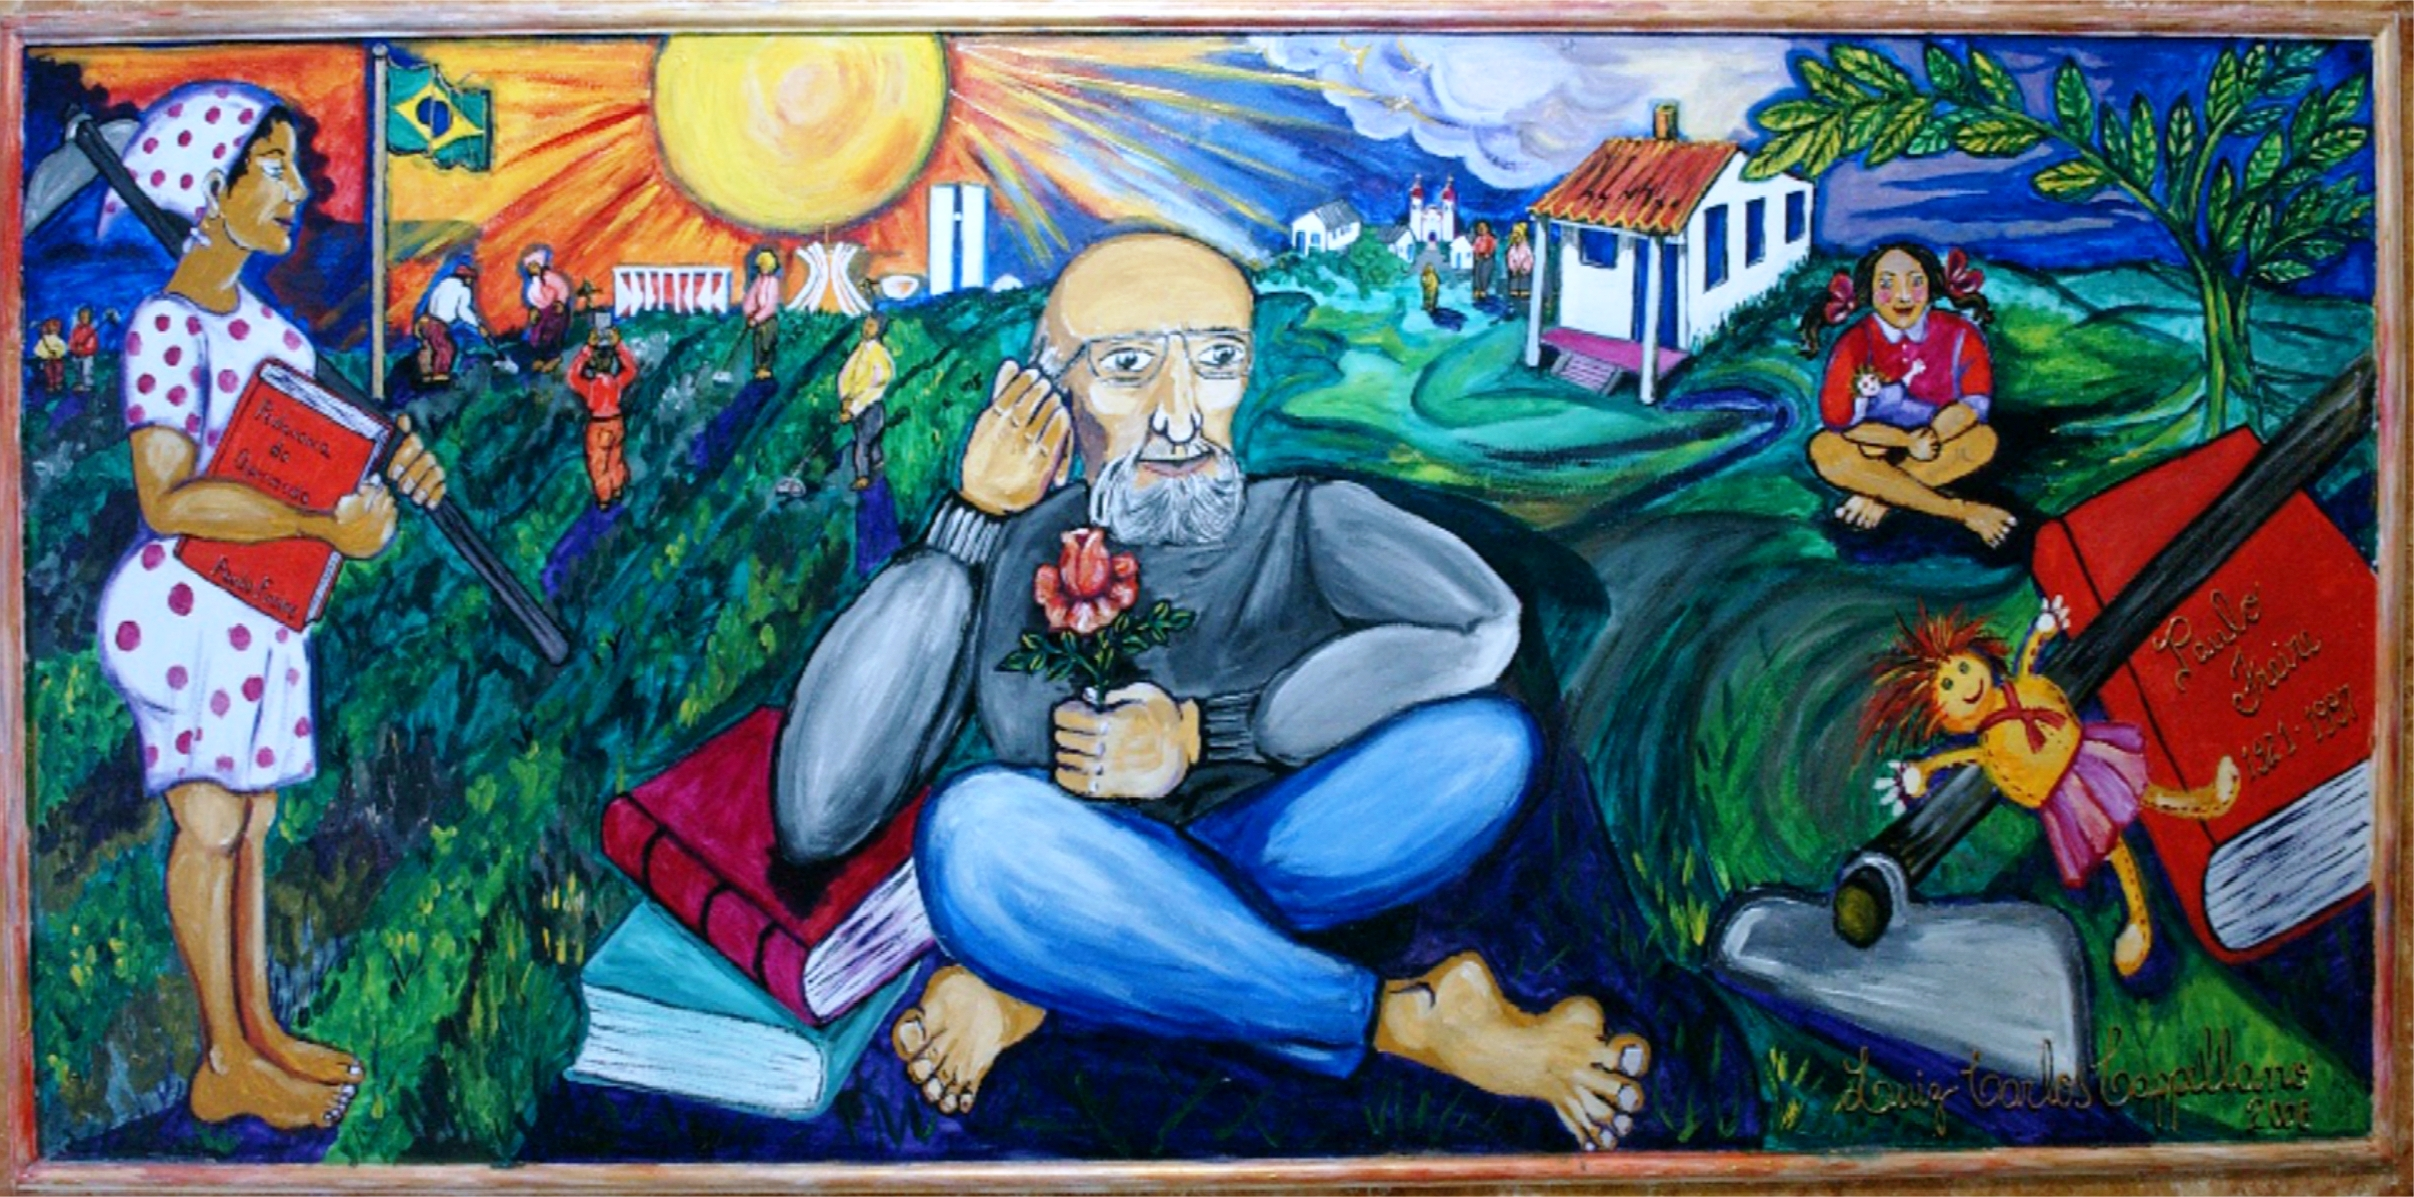 http://upload.wikimedia.org/wikipedia/commons/f/fd/Painel.Paulo.Freire.JPG